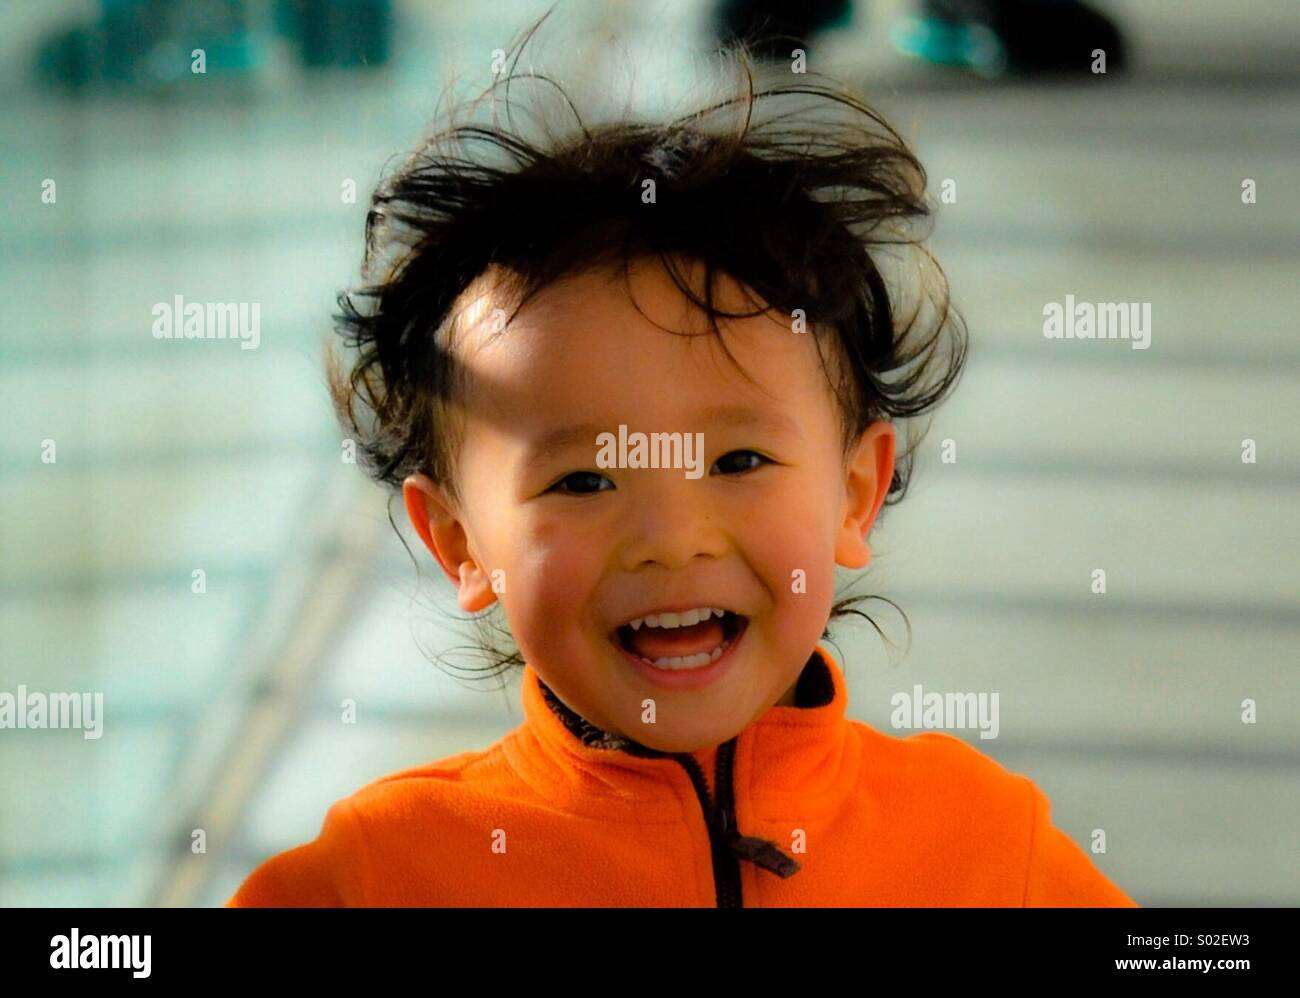 3 year old Luis S. Of Japan runs and lough wile looking at the camera at Rinkaekoen Park in Tokyo. Photo by: RAVT - Stock Image